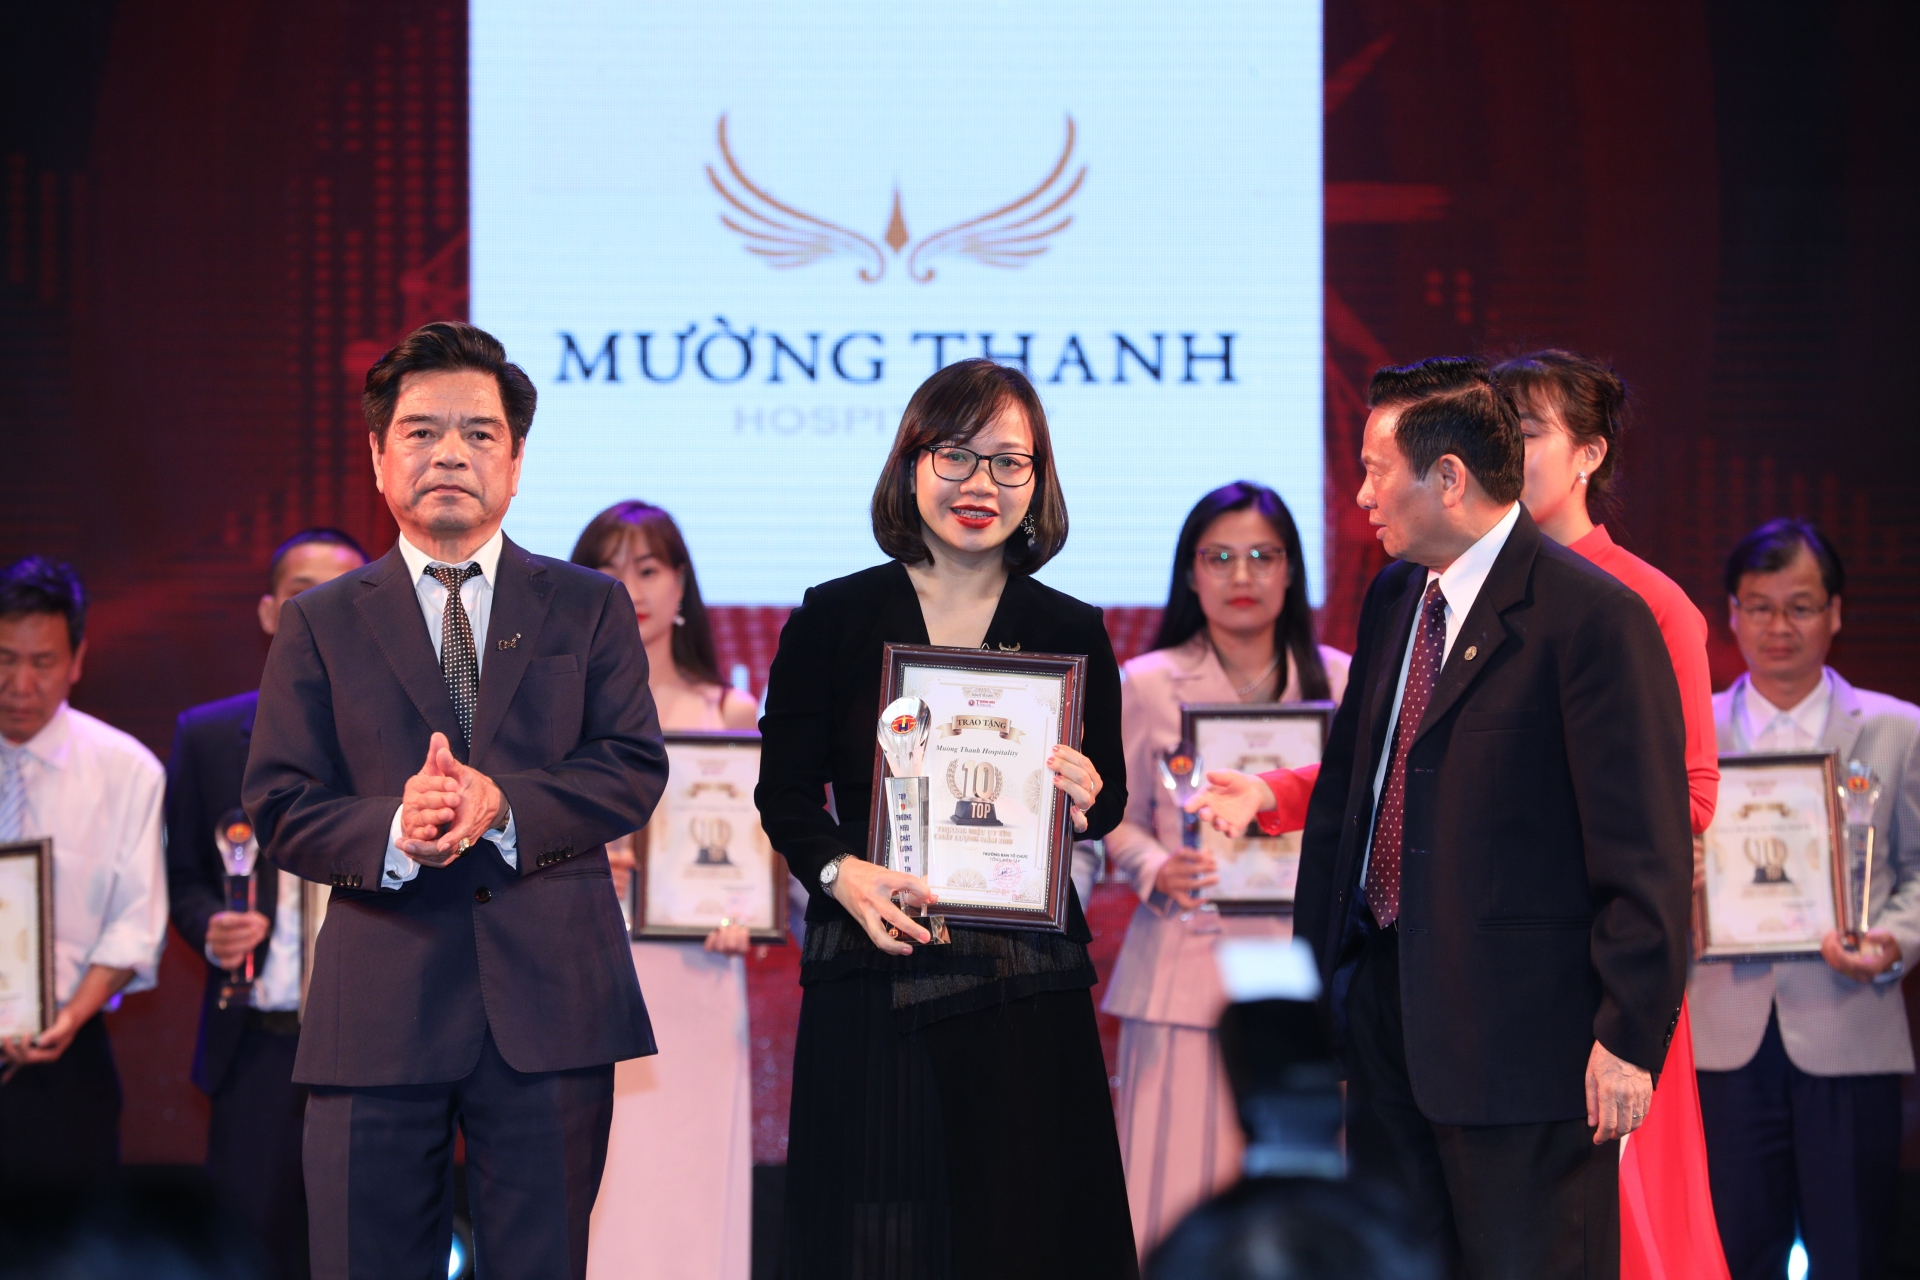 Muong Thanh among top 10 most prestigious and highest-quality brands